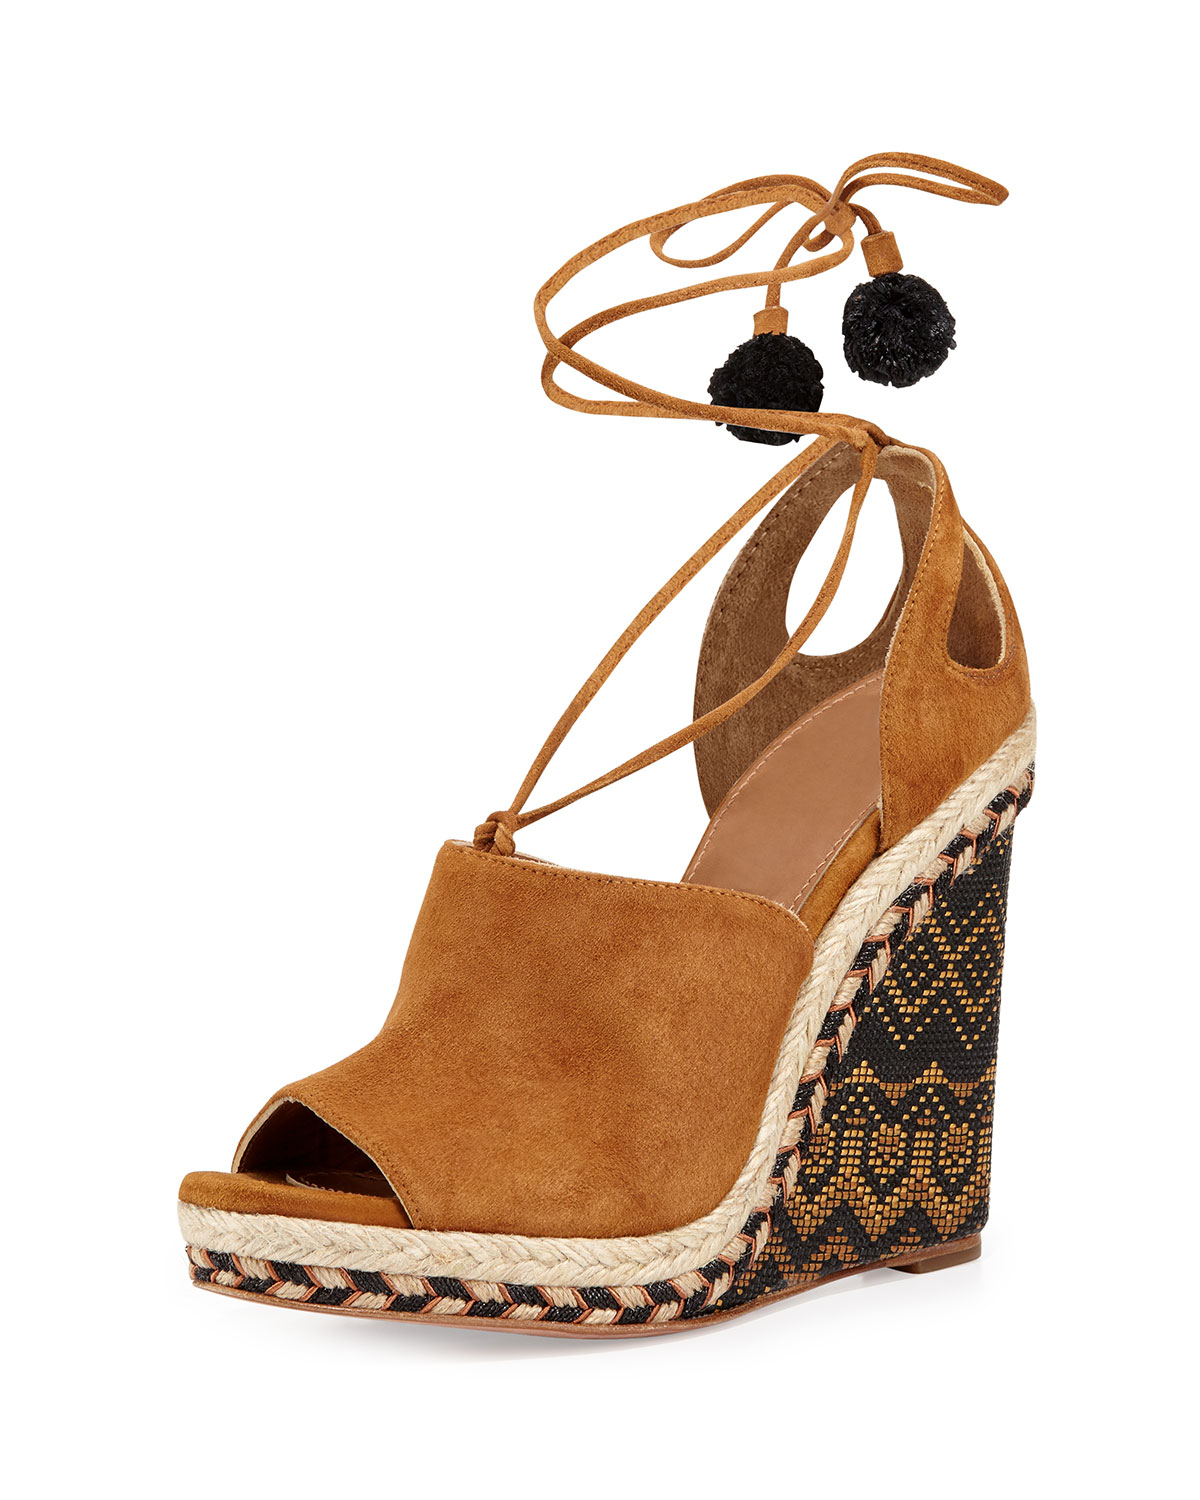 2a43dede355 Aquazzura Palm Springs Wedge Espadrille Sandal